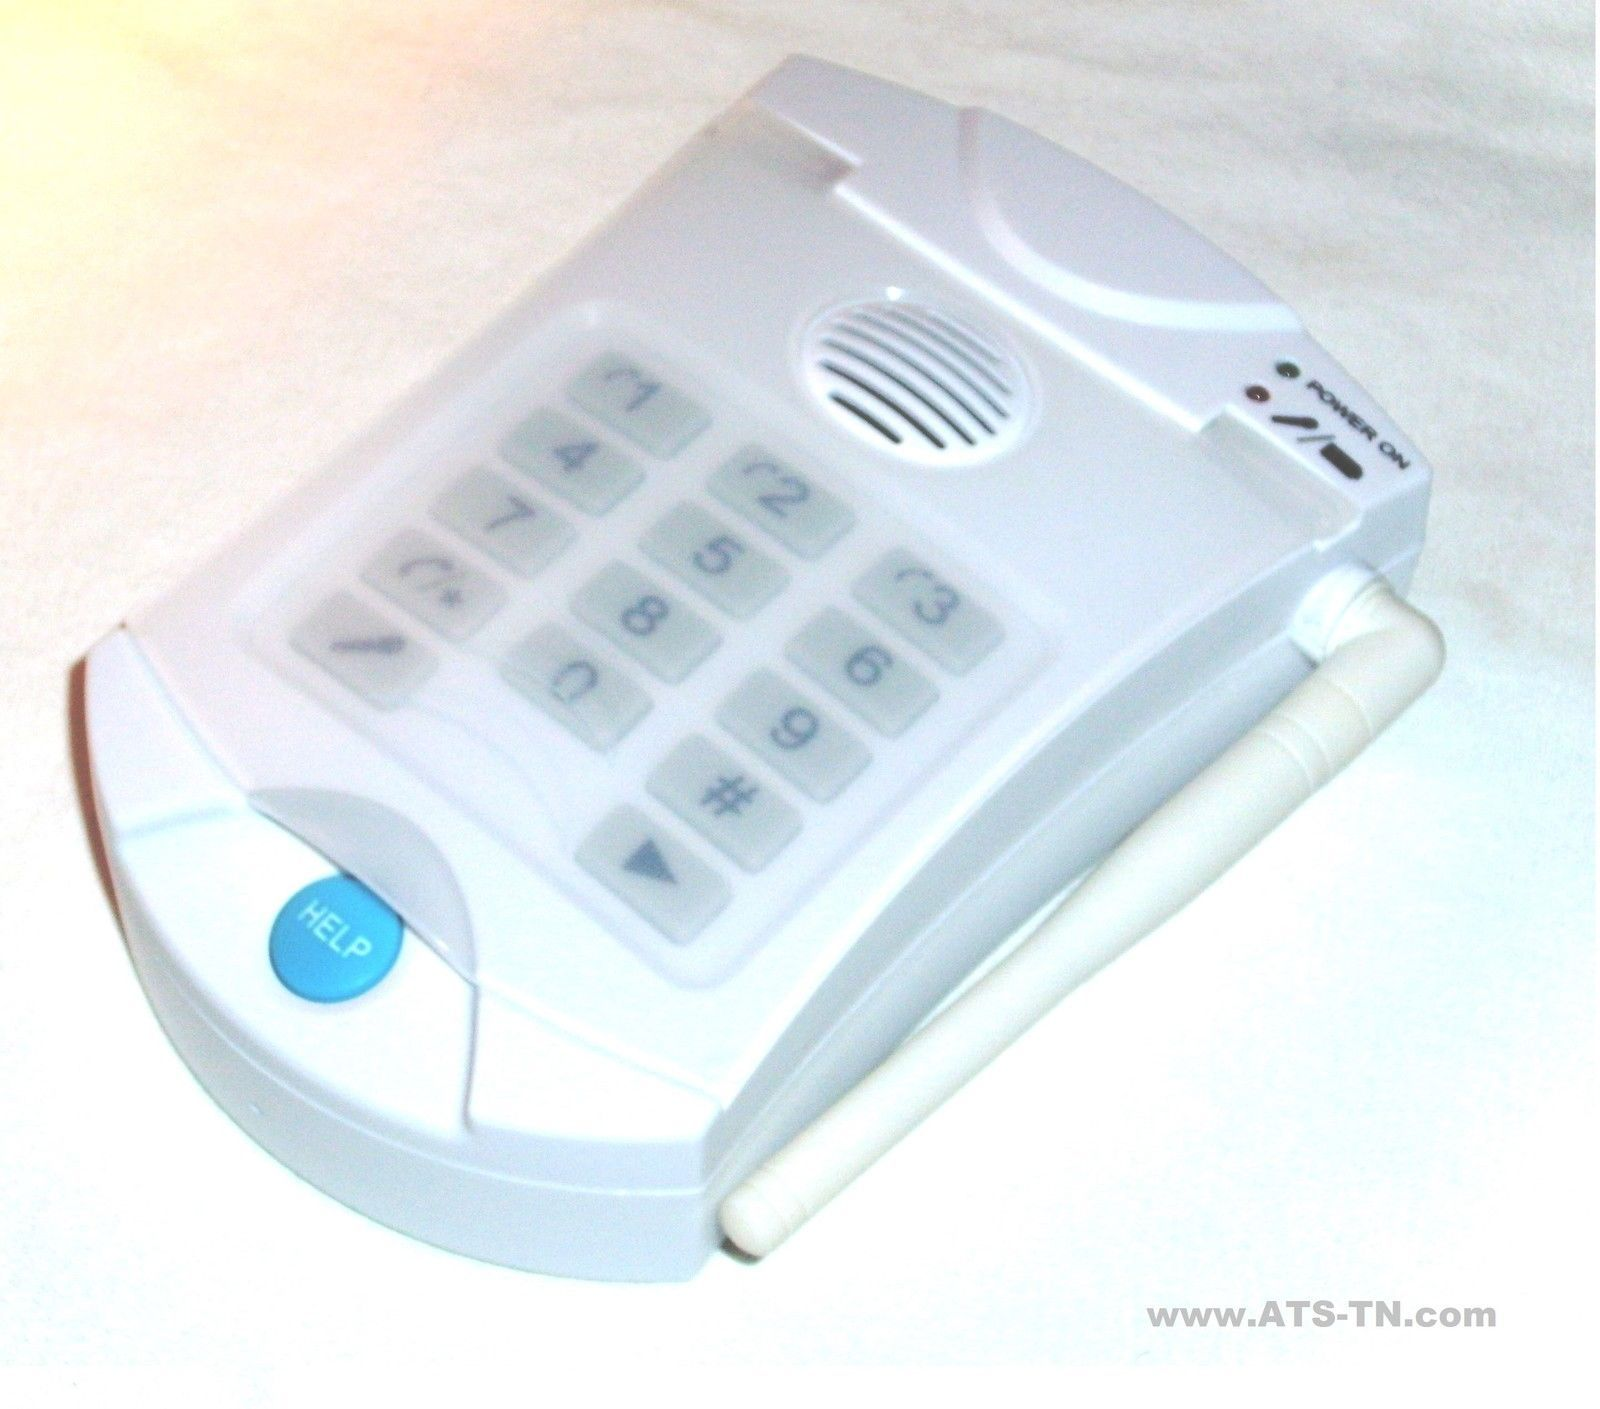 LIFE GUARDIAN 911 MEDICAL ALARM EMERGENCY ALERT PHONE SYSTEM NO MONTHLY CHARGES